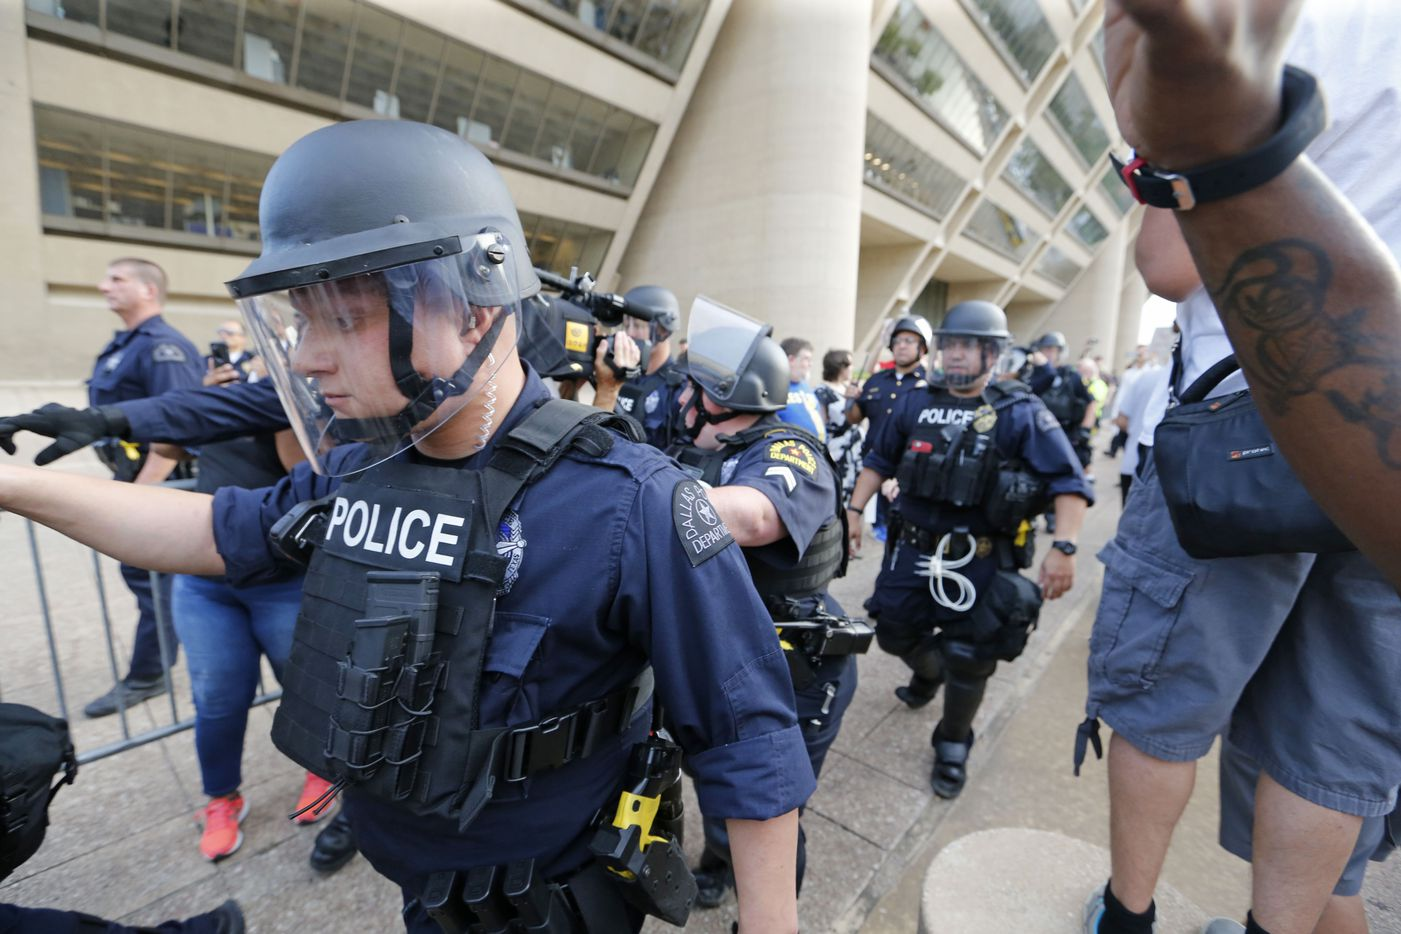 Dallas Police move into place during the March Against White Supremacy at Dallas City Hall.